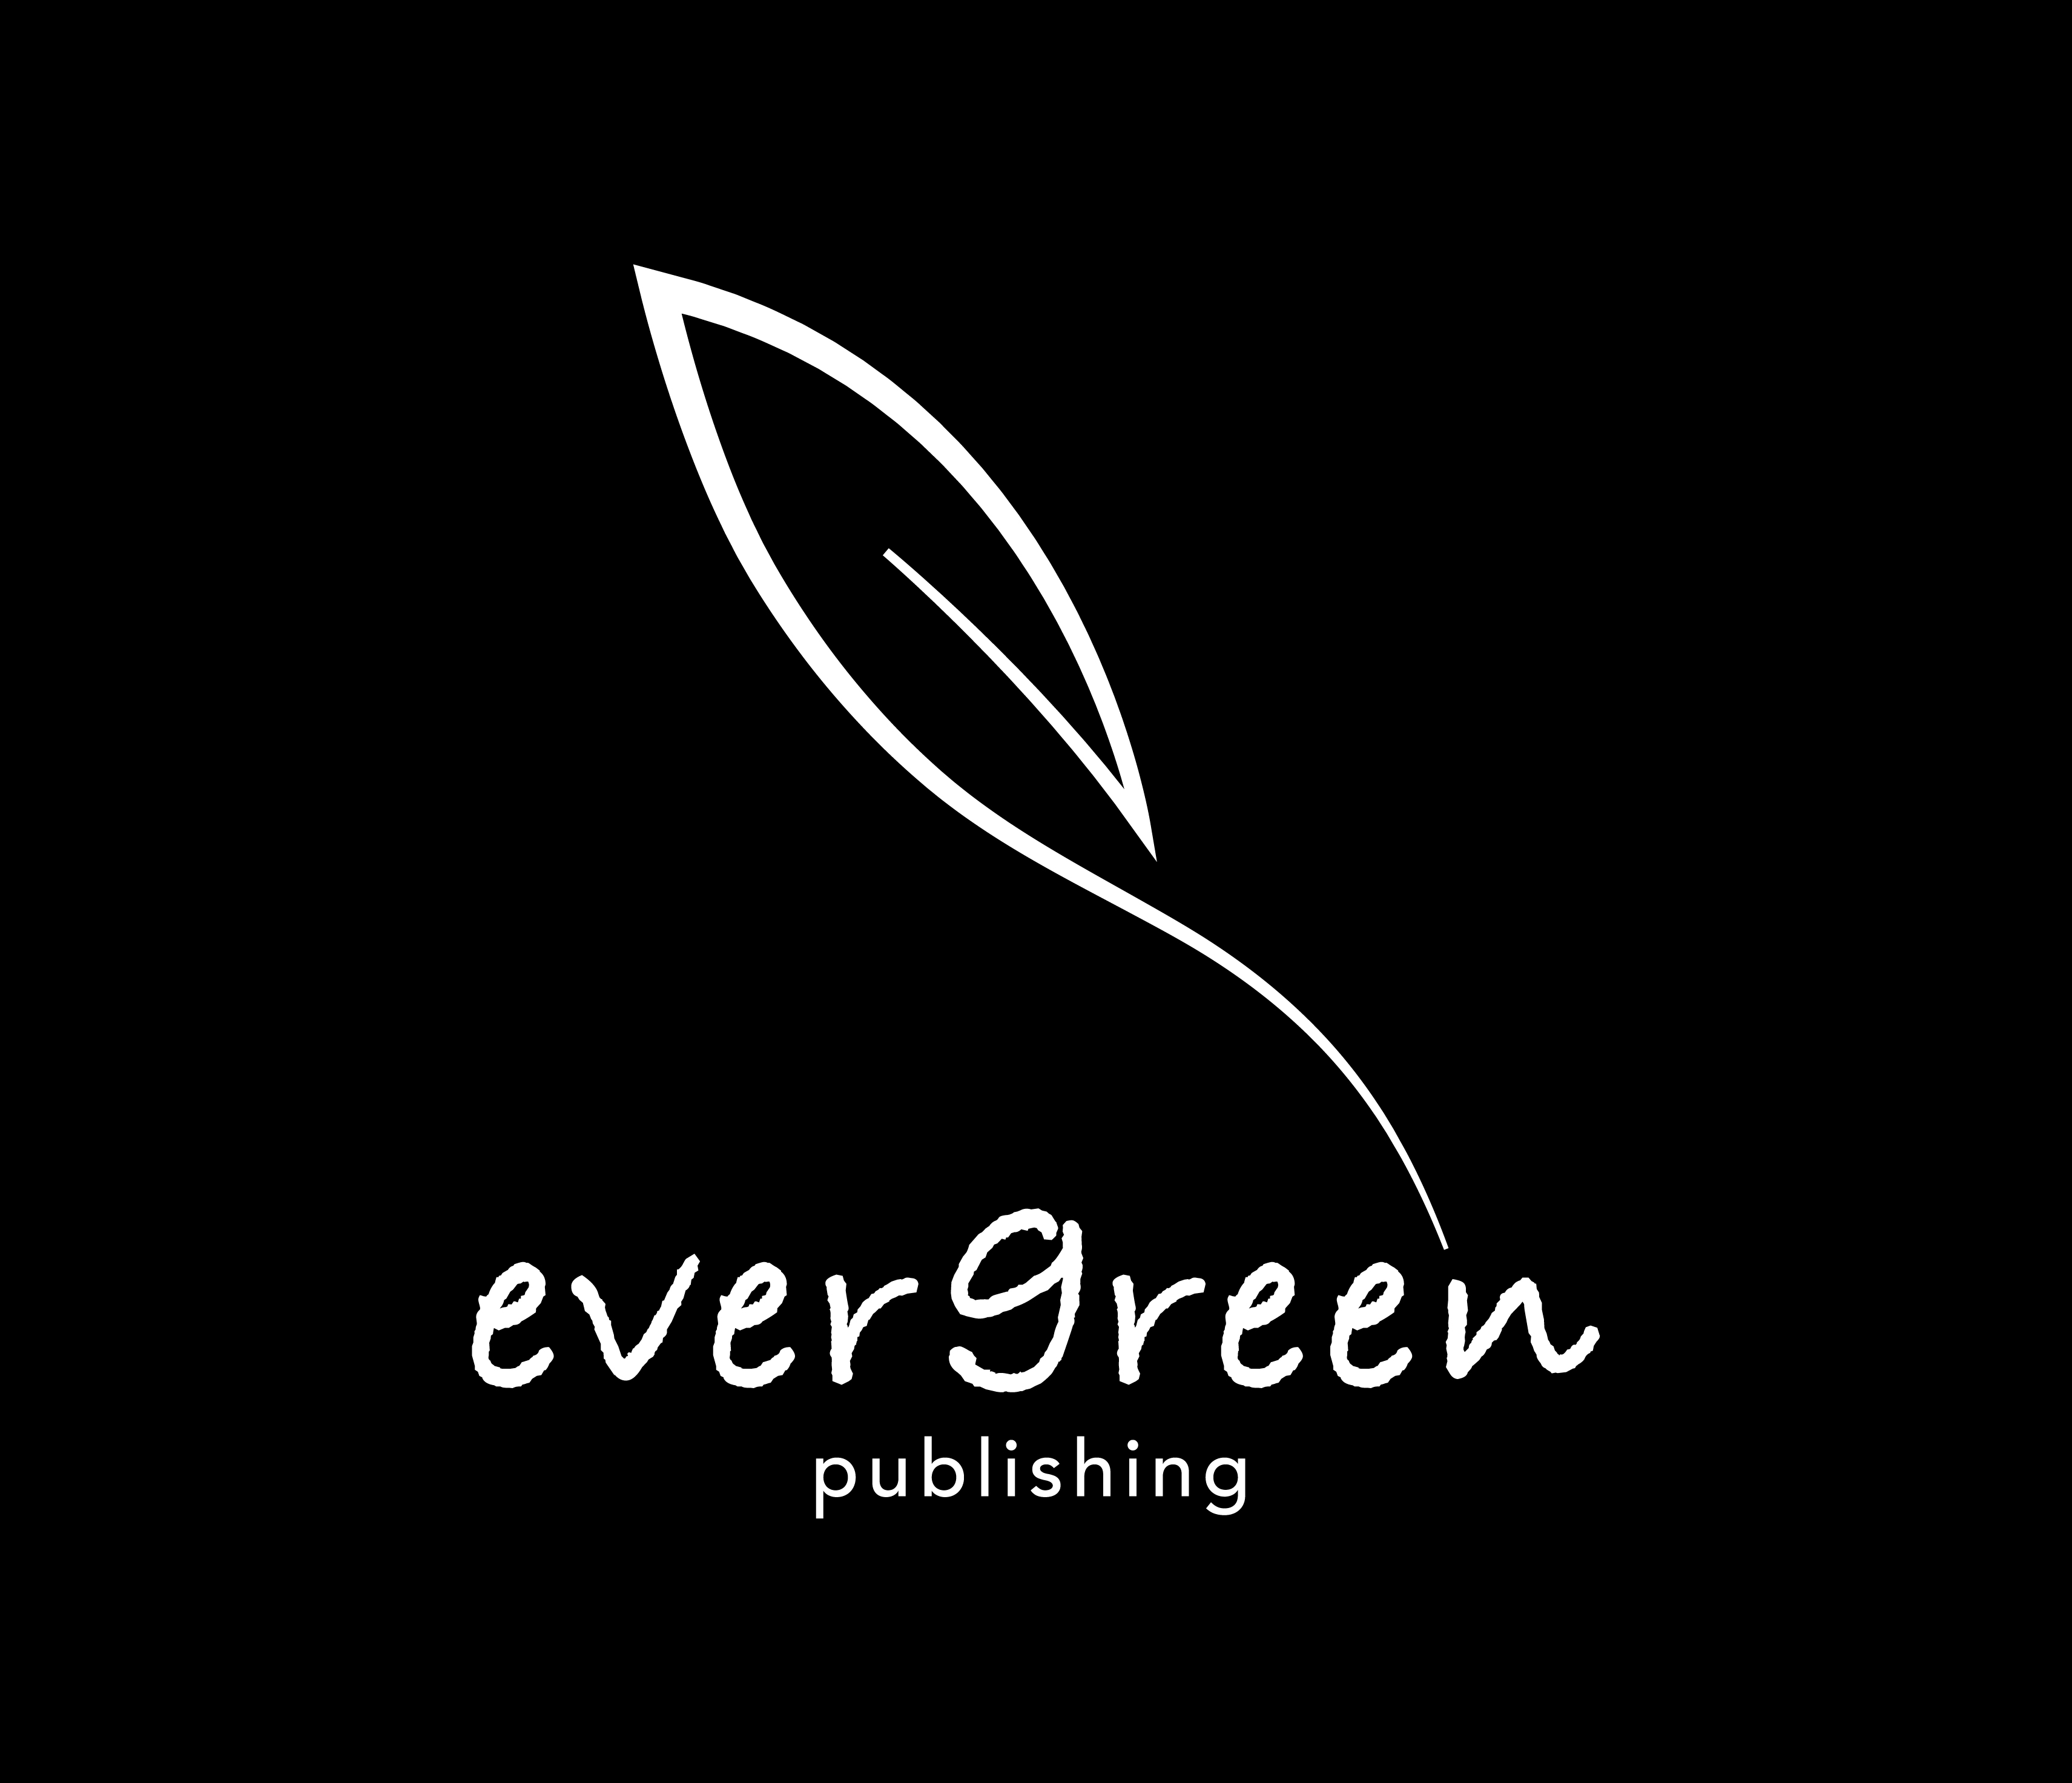 evergreen_logo_04_bk2